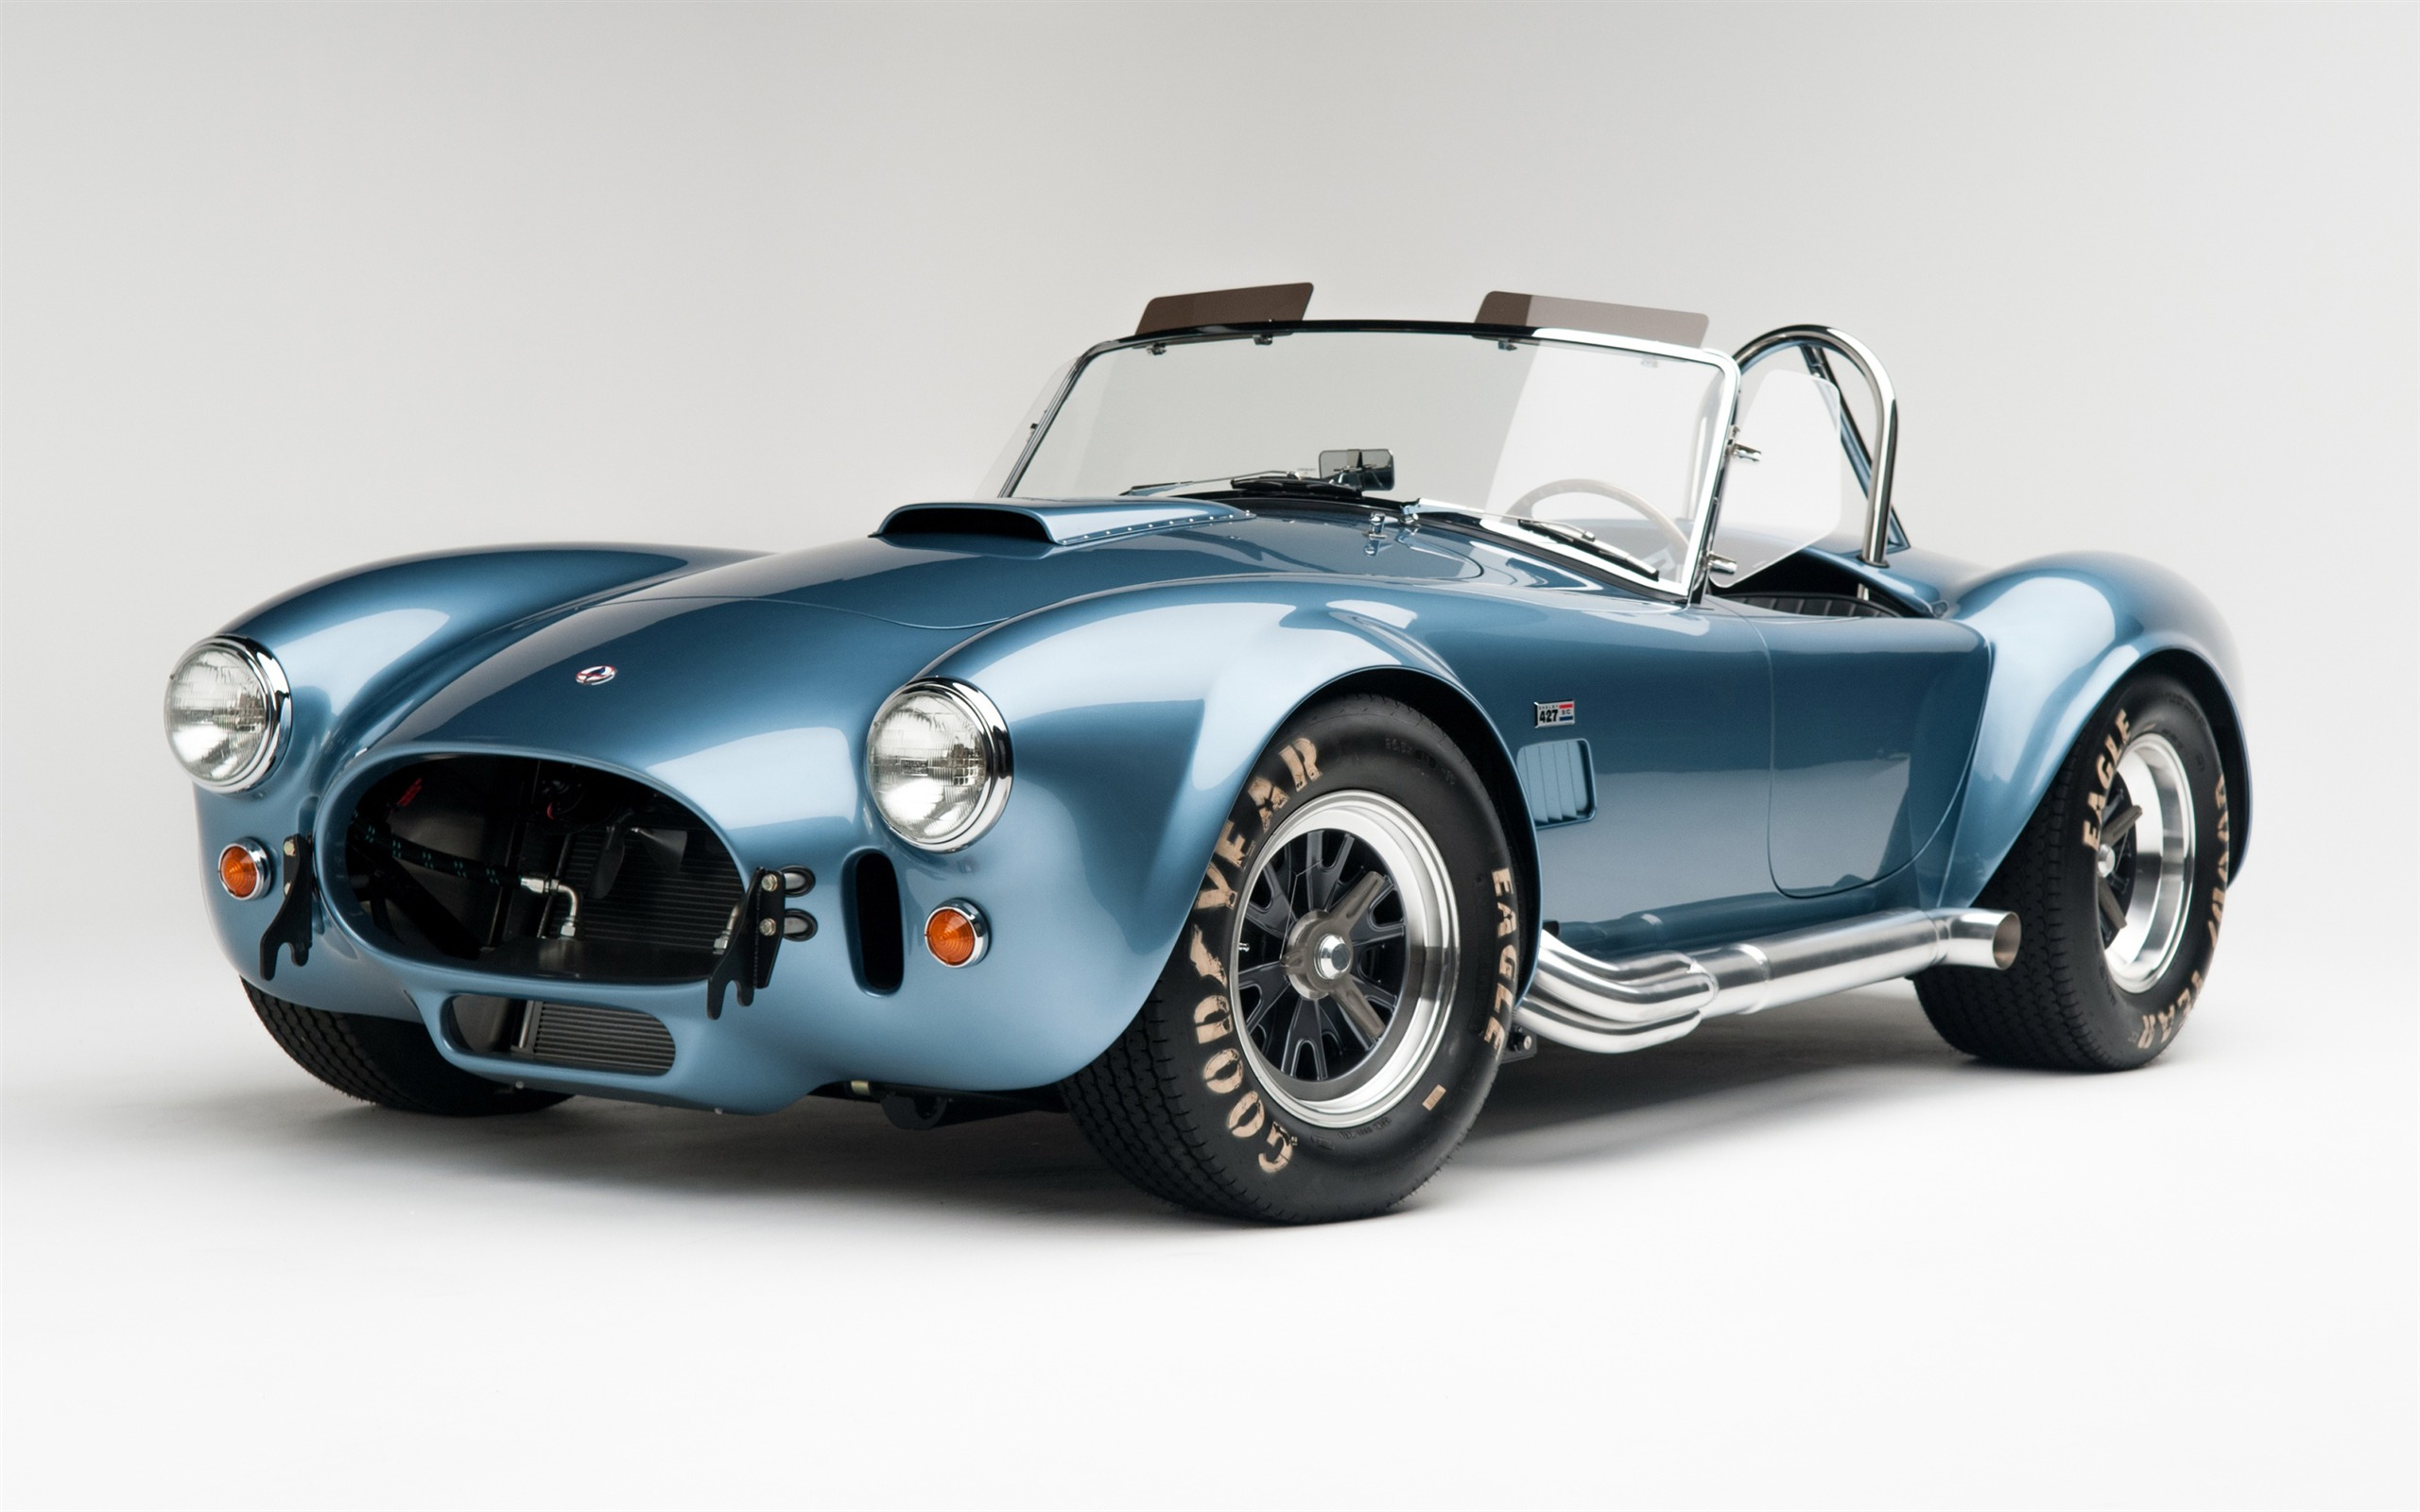 Classic classic car shelby cobra - 2560x1600 wallpaper download